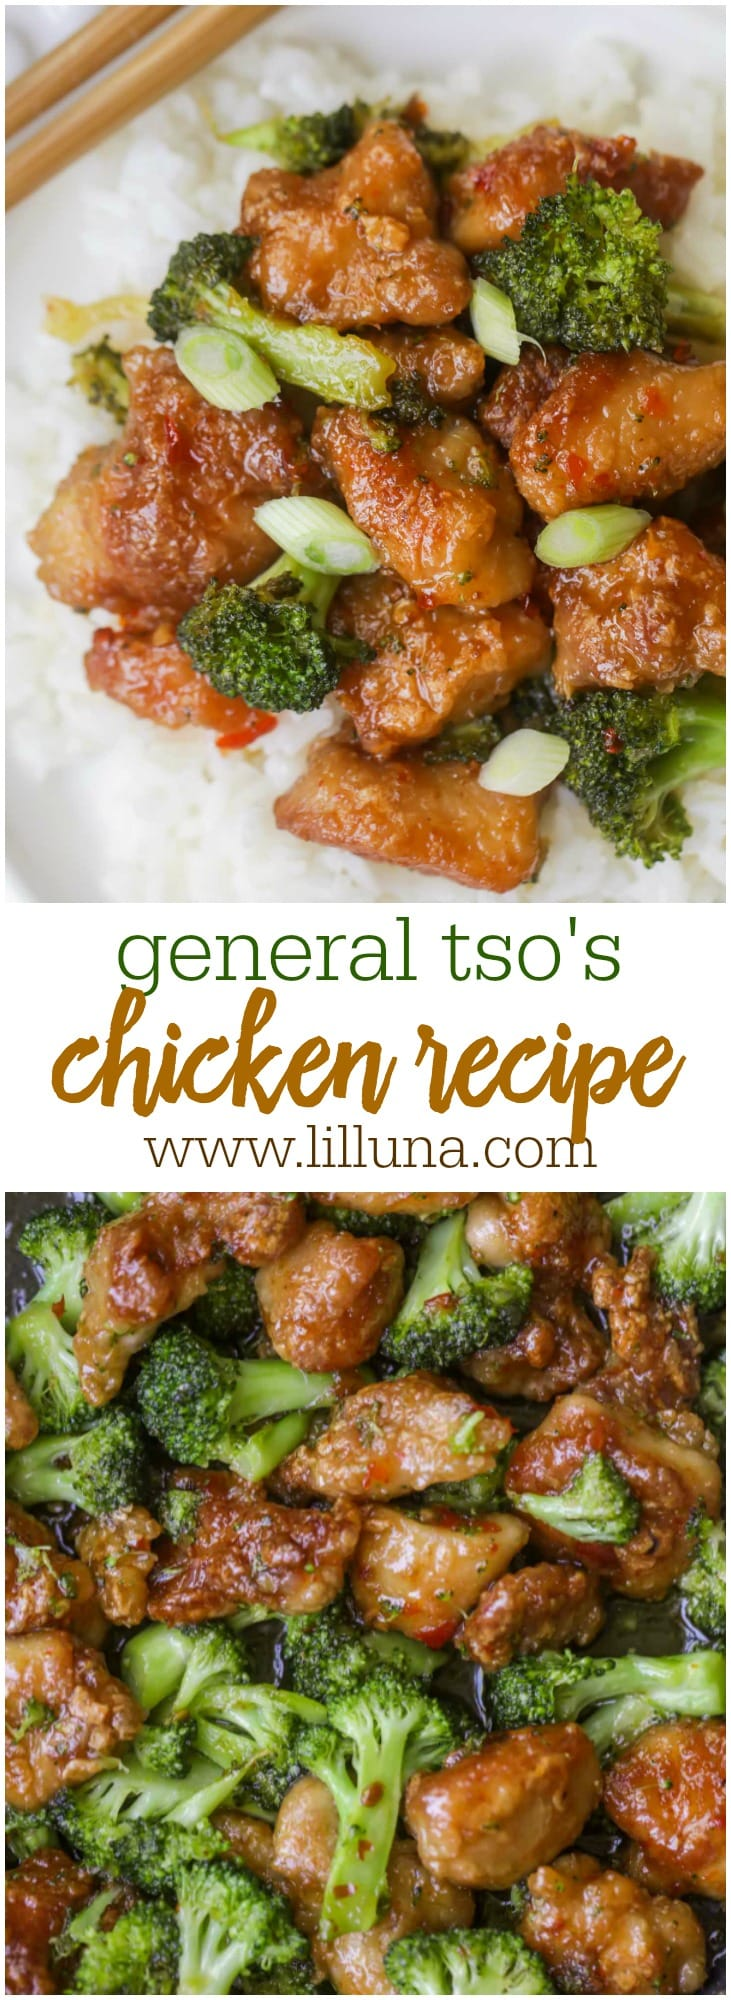 Delicious General Tso's chicken - a sweet and fried chicken recipe that is out of this world delicious and includes broccoli.